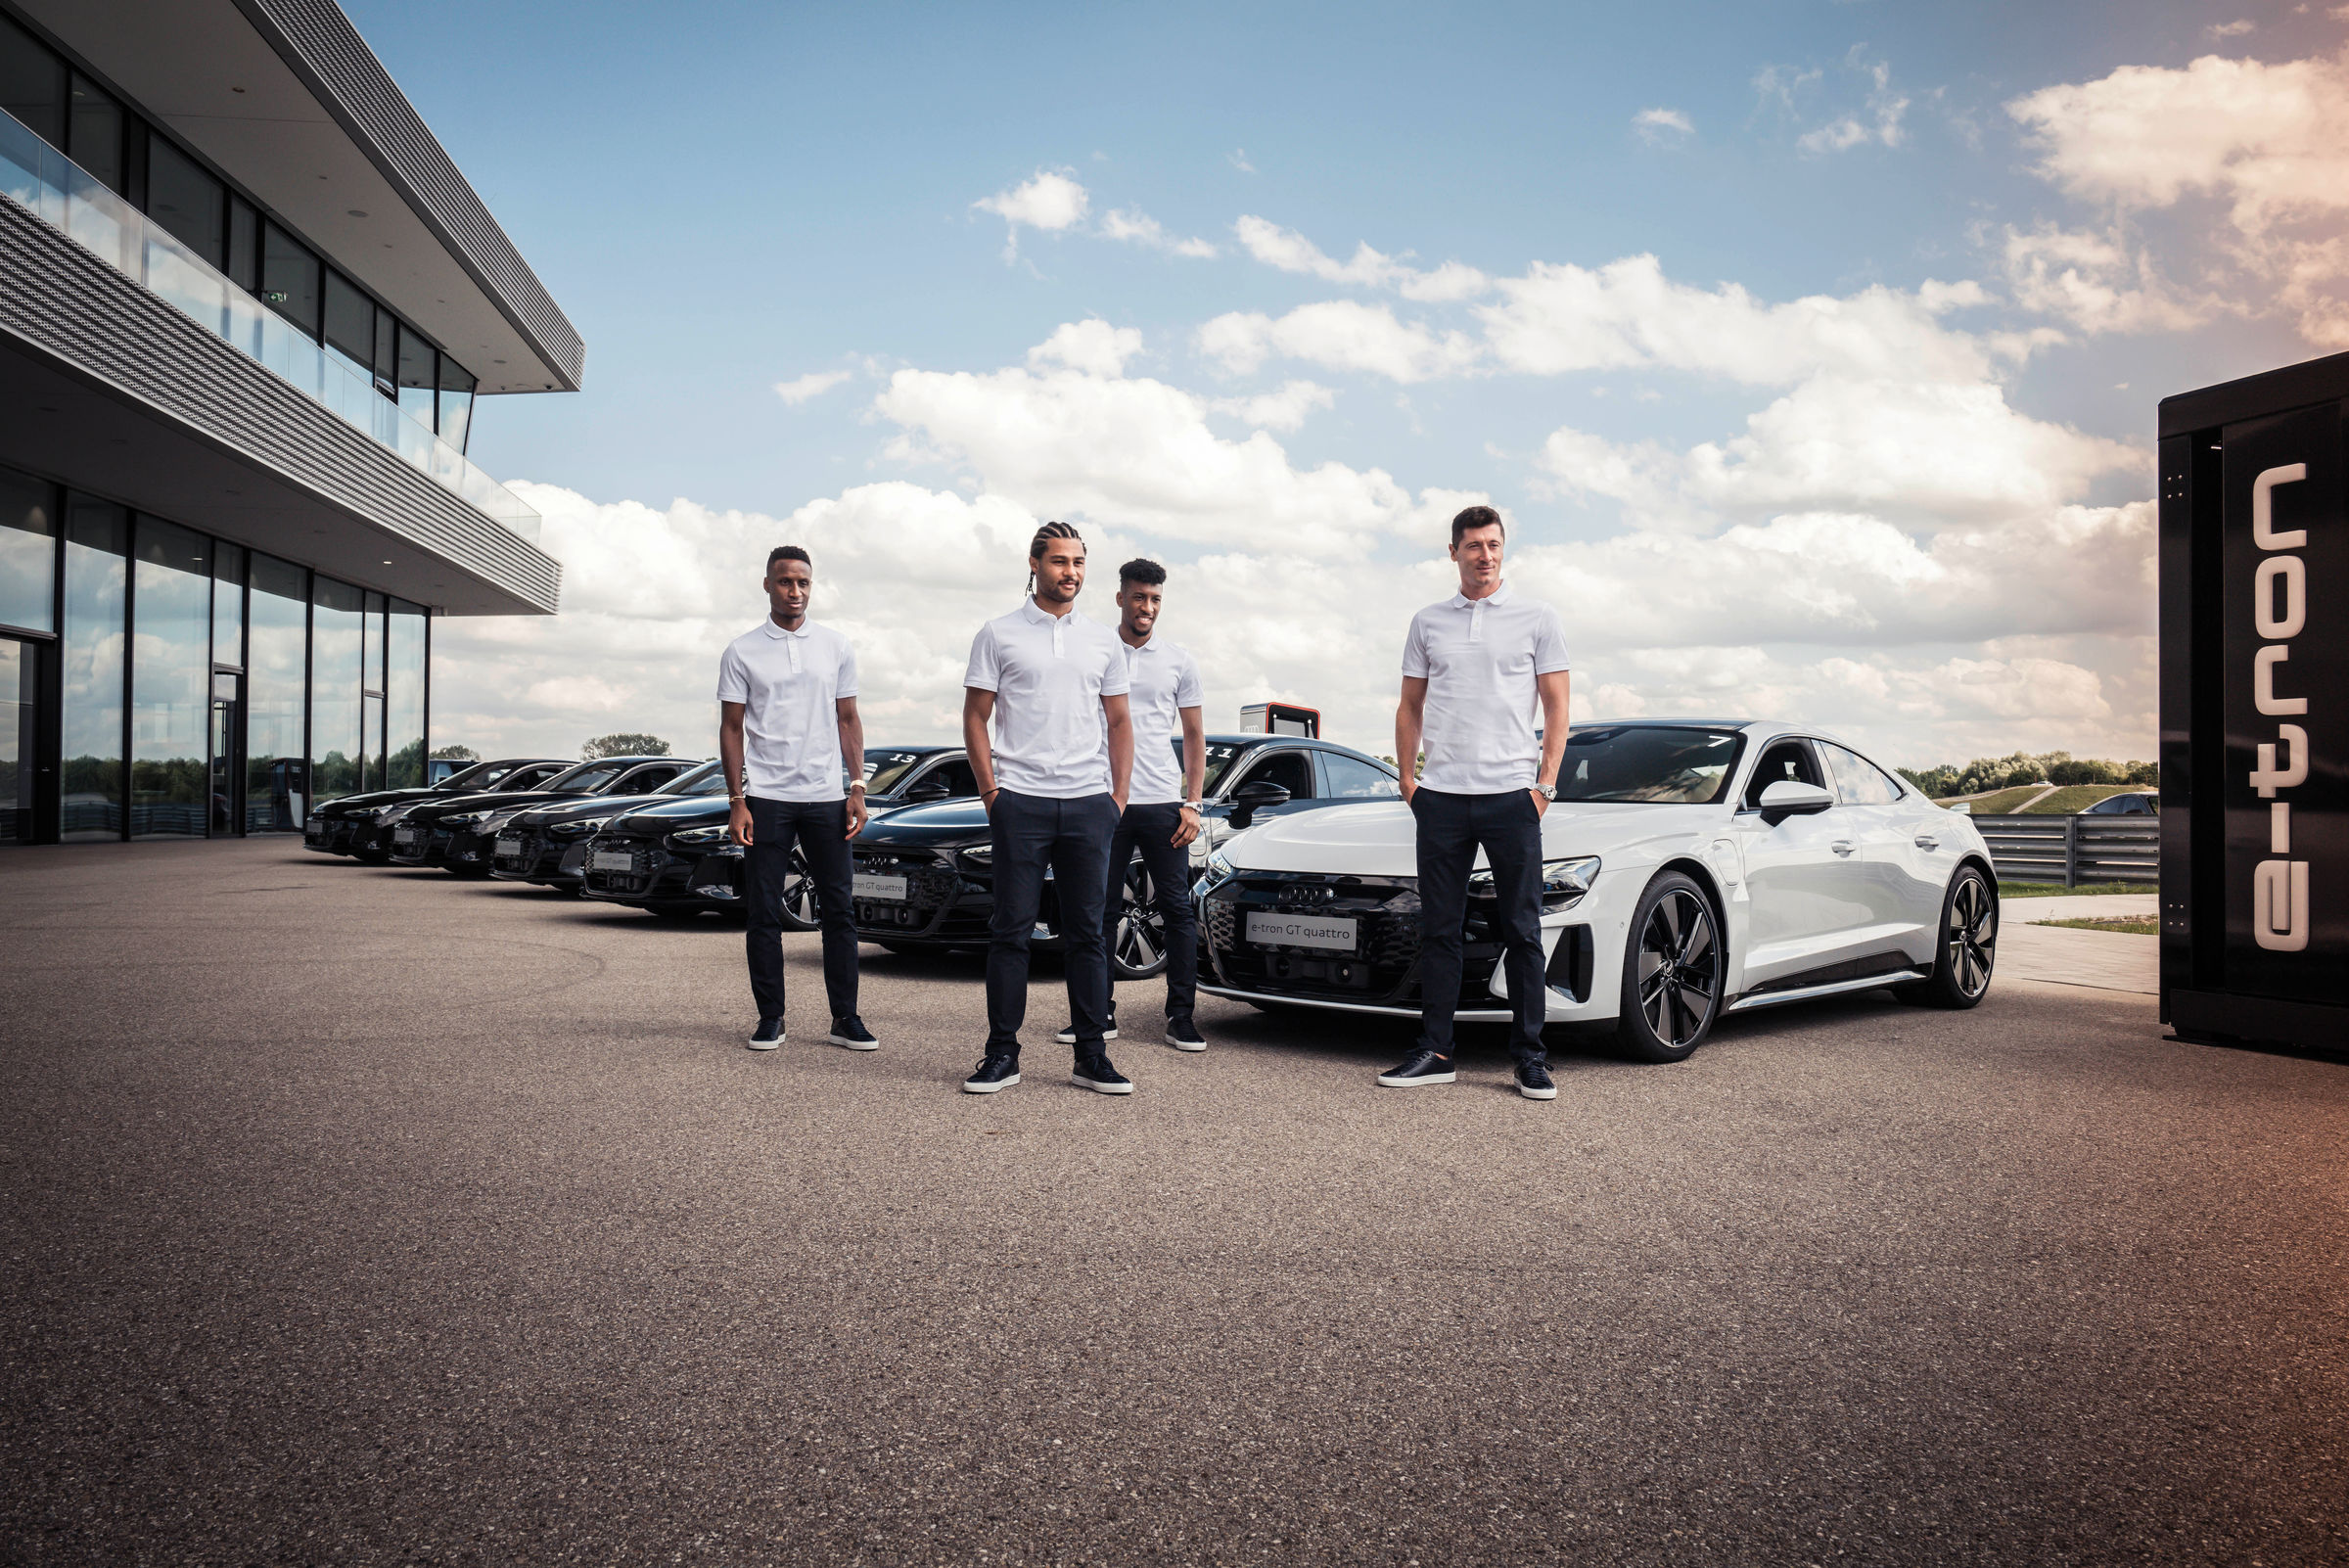 Electrification 2.0: pros from FC Bayern receive Audi e-tron GT - Image 2